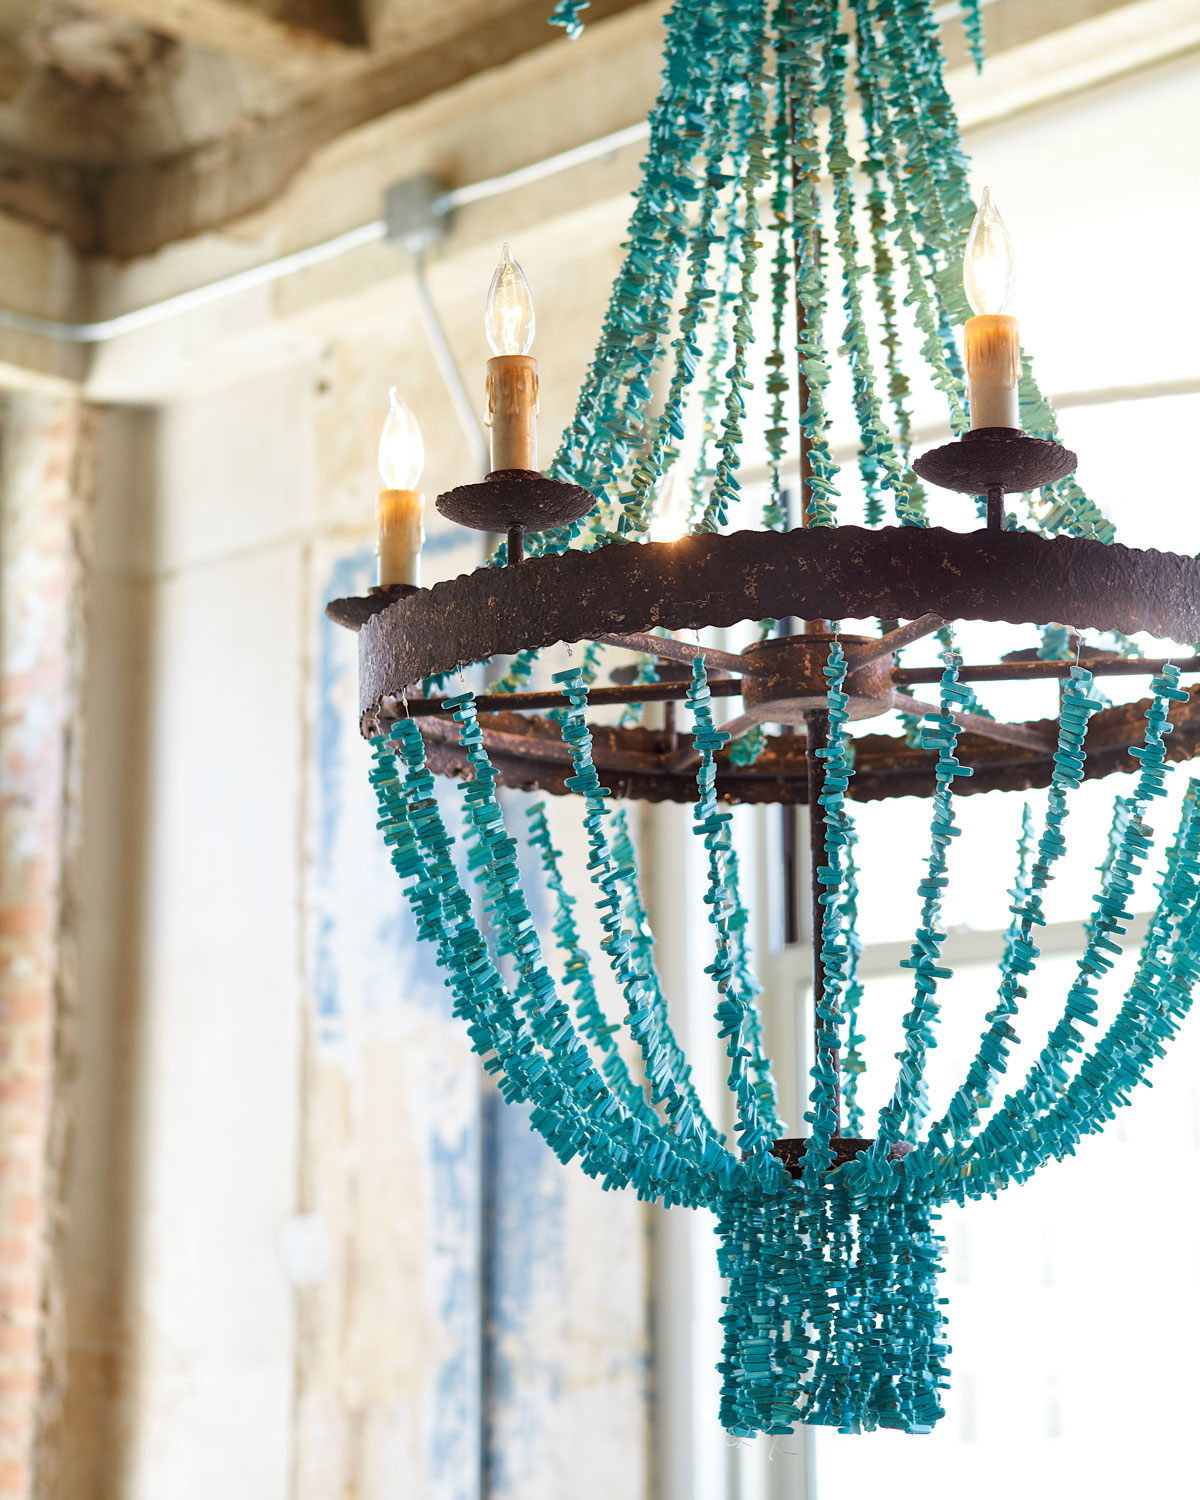 Welcoming White Kitchen Is Illuminated By Regina Andrew: Turquoise Beads Six-Light Chandelier